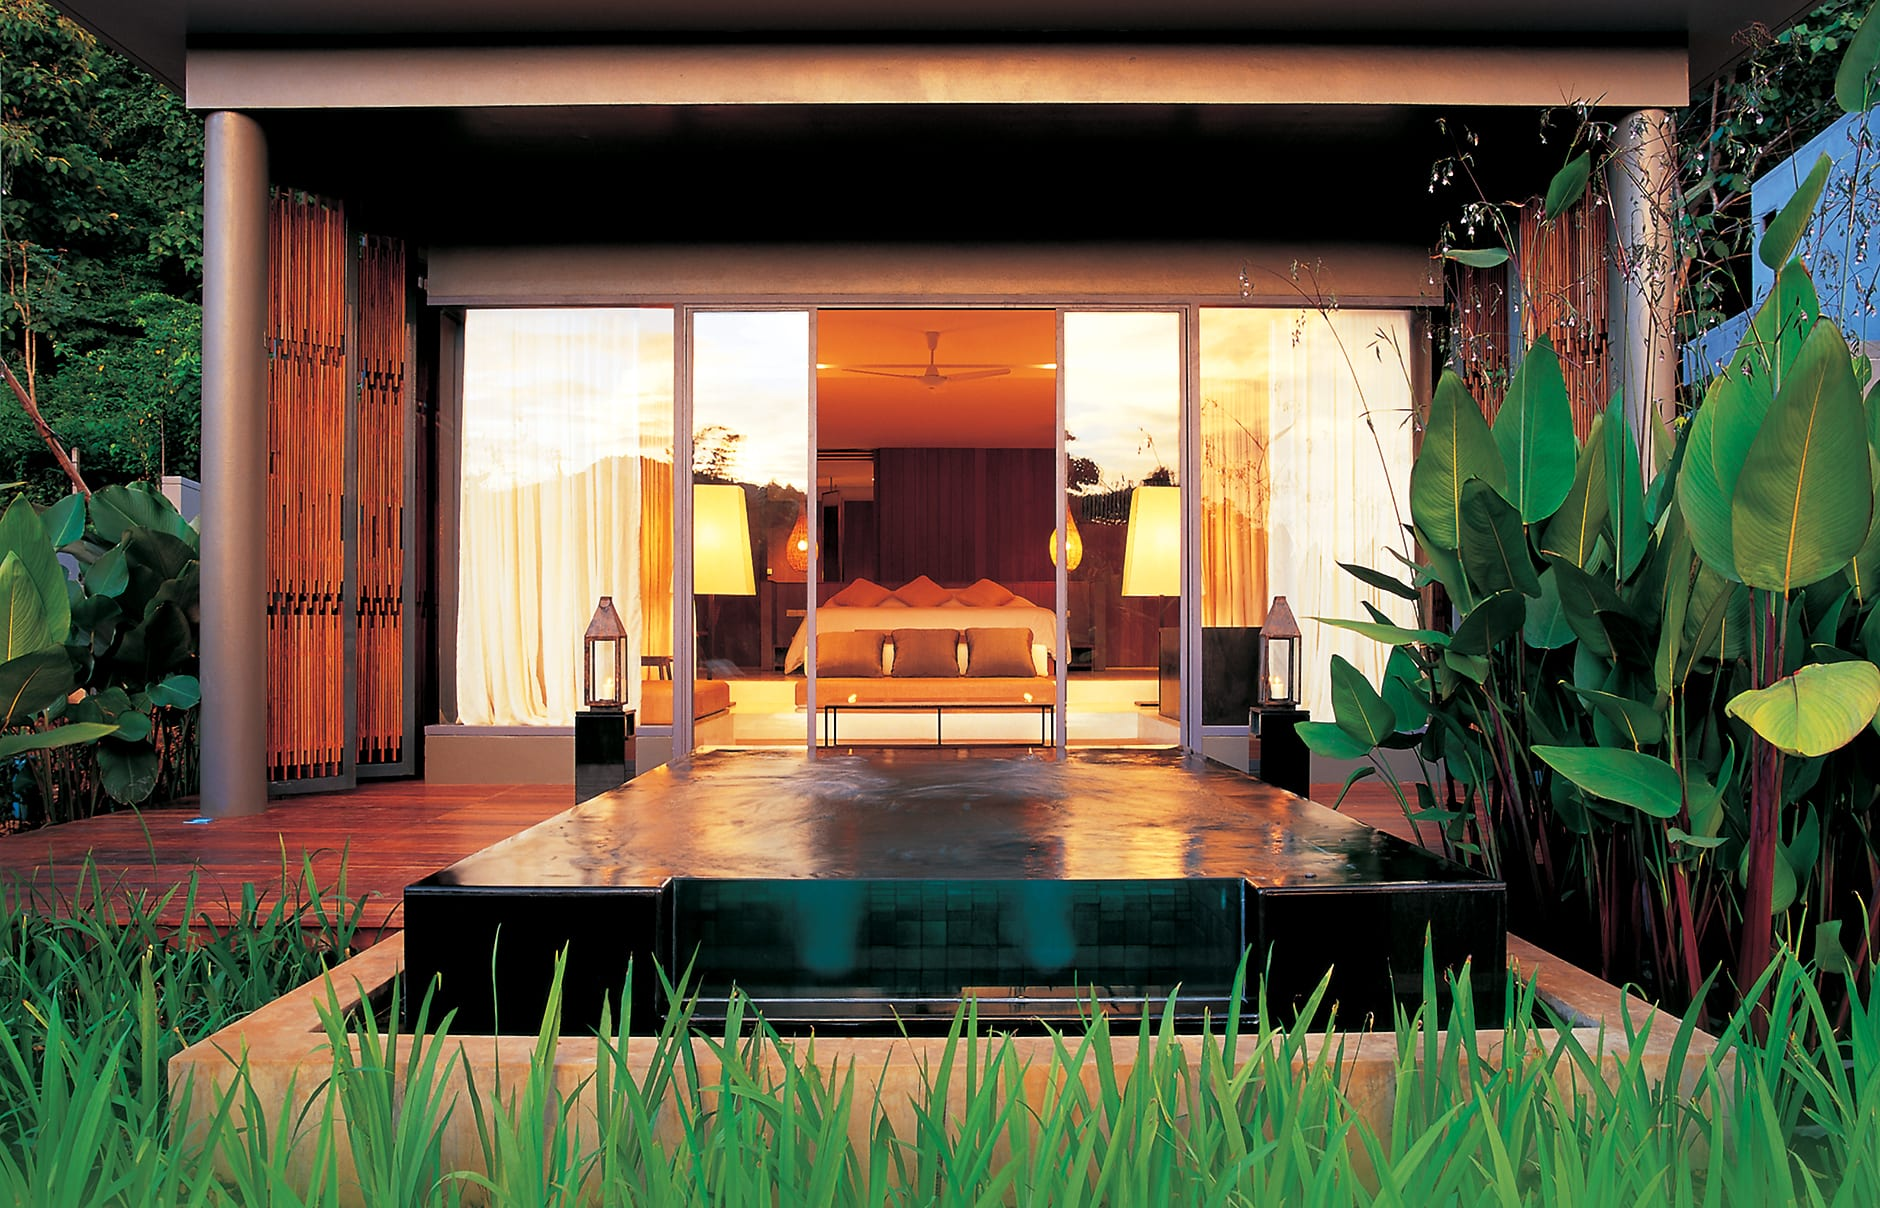 Plunge Pool Pavilion. Veranda Chiang Mai - The High Resort. © Veranda Chiang Mai - The High Resort